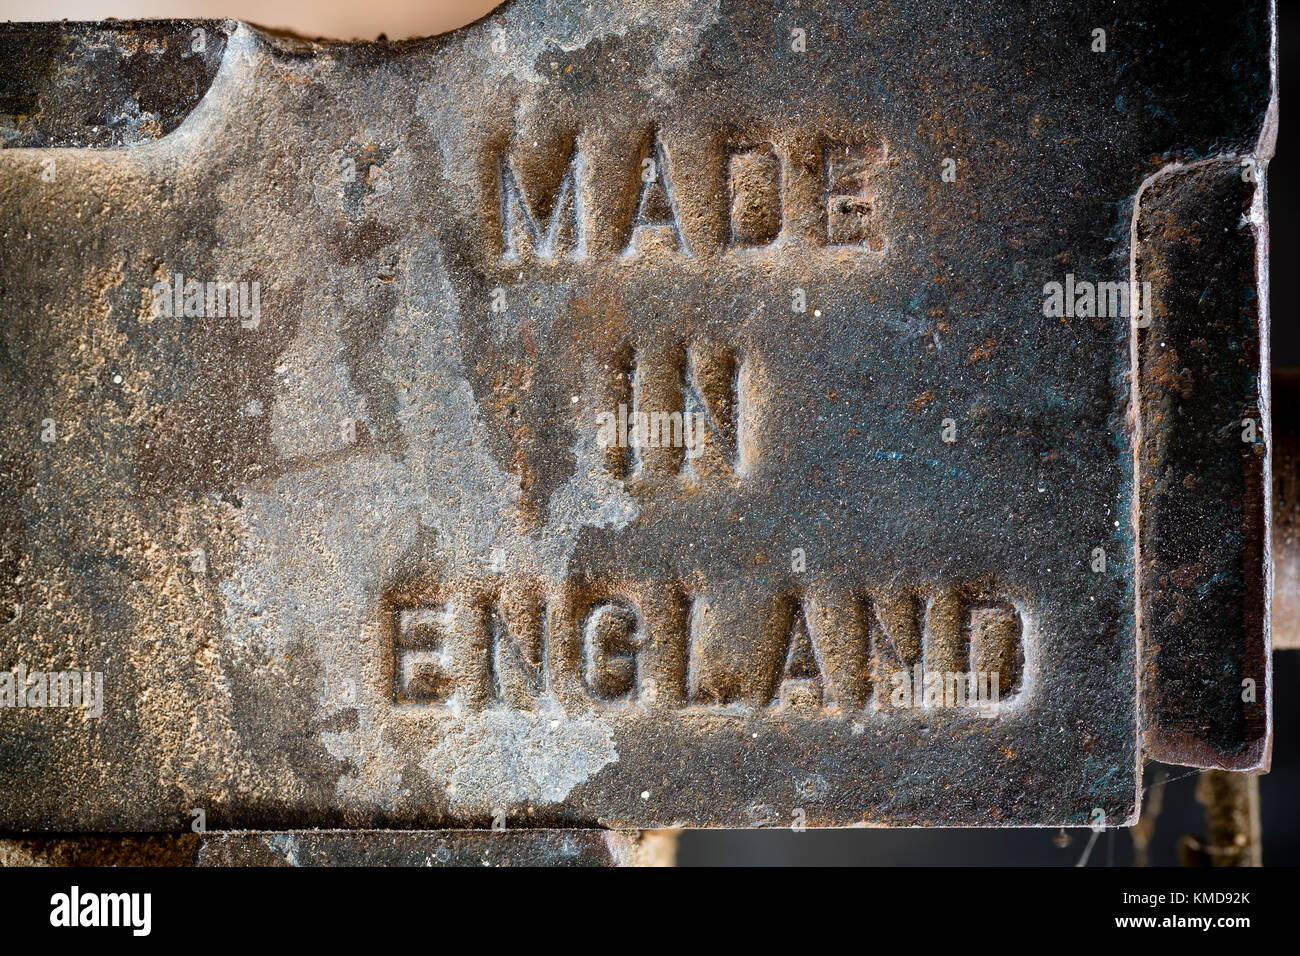 Made in England - embossed on the side of a vice - Stock Image